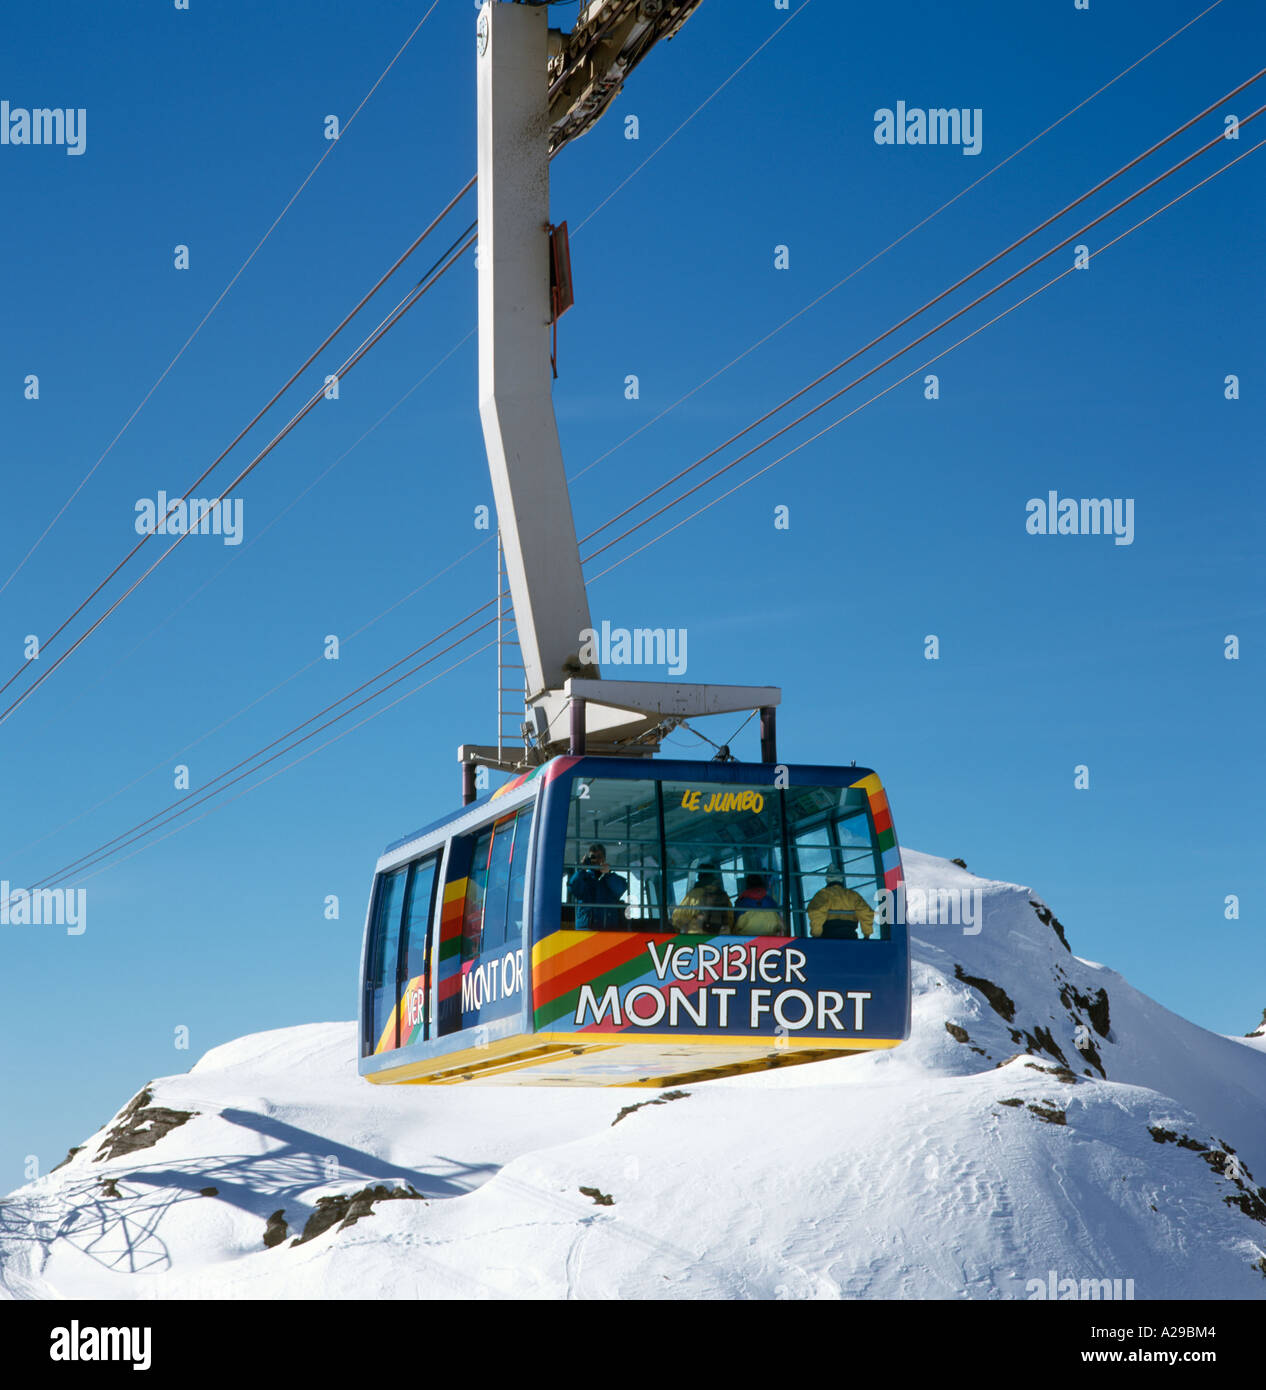 Le Jumbo Cable Car to the Mont Fort ski area, Verbier, Valois, Bernese Alps, Switzerland - Stock Image